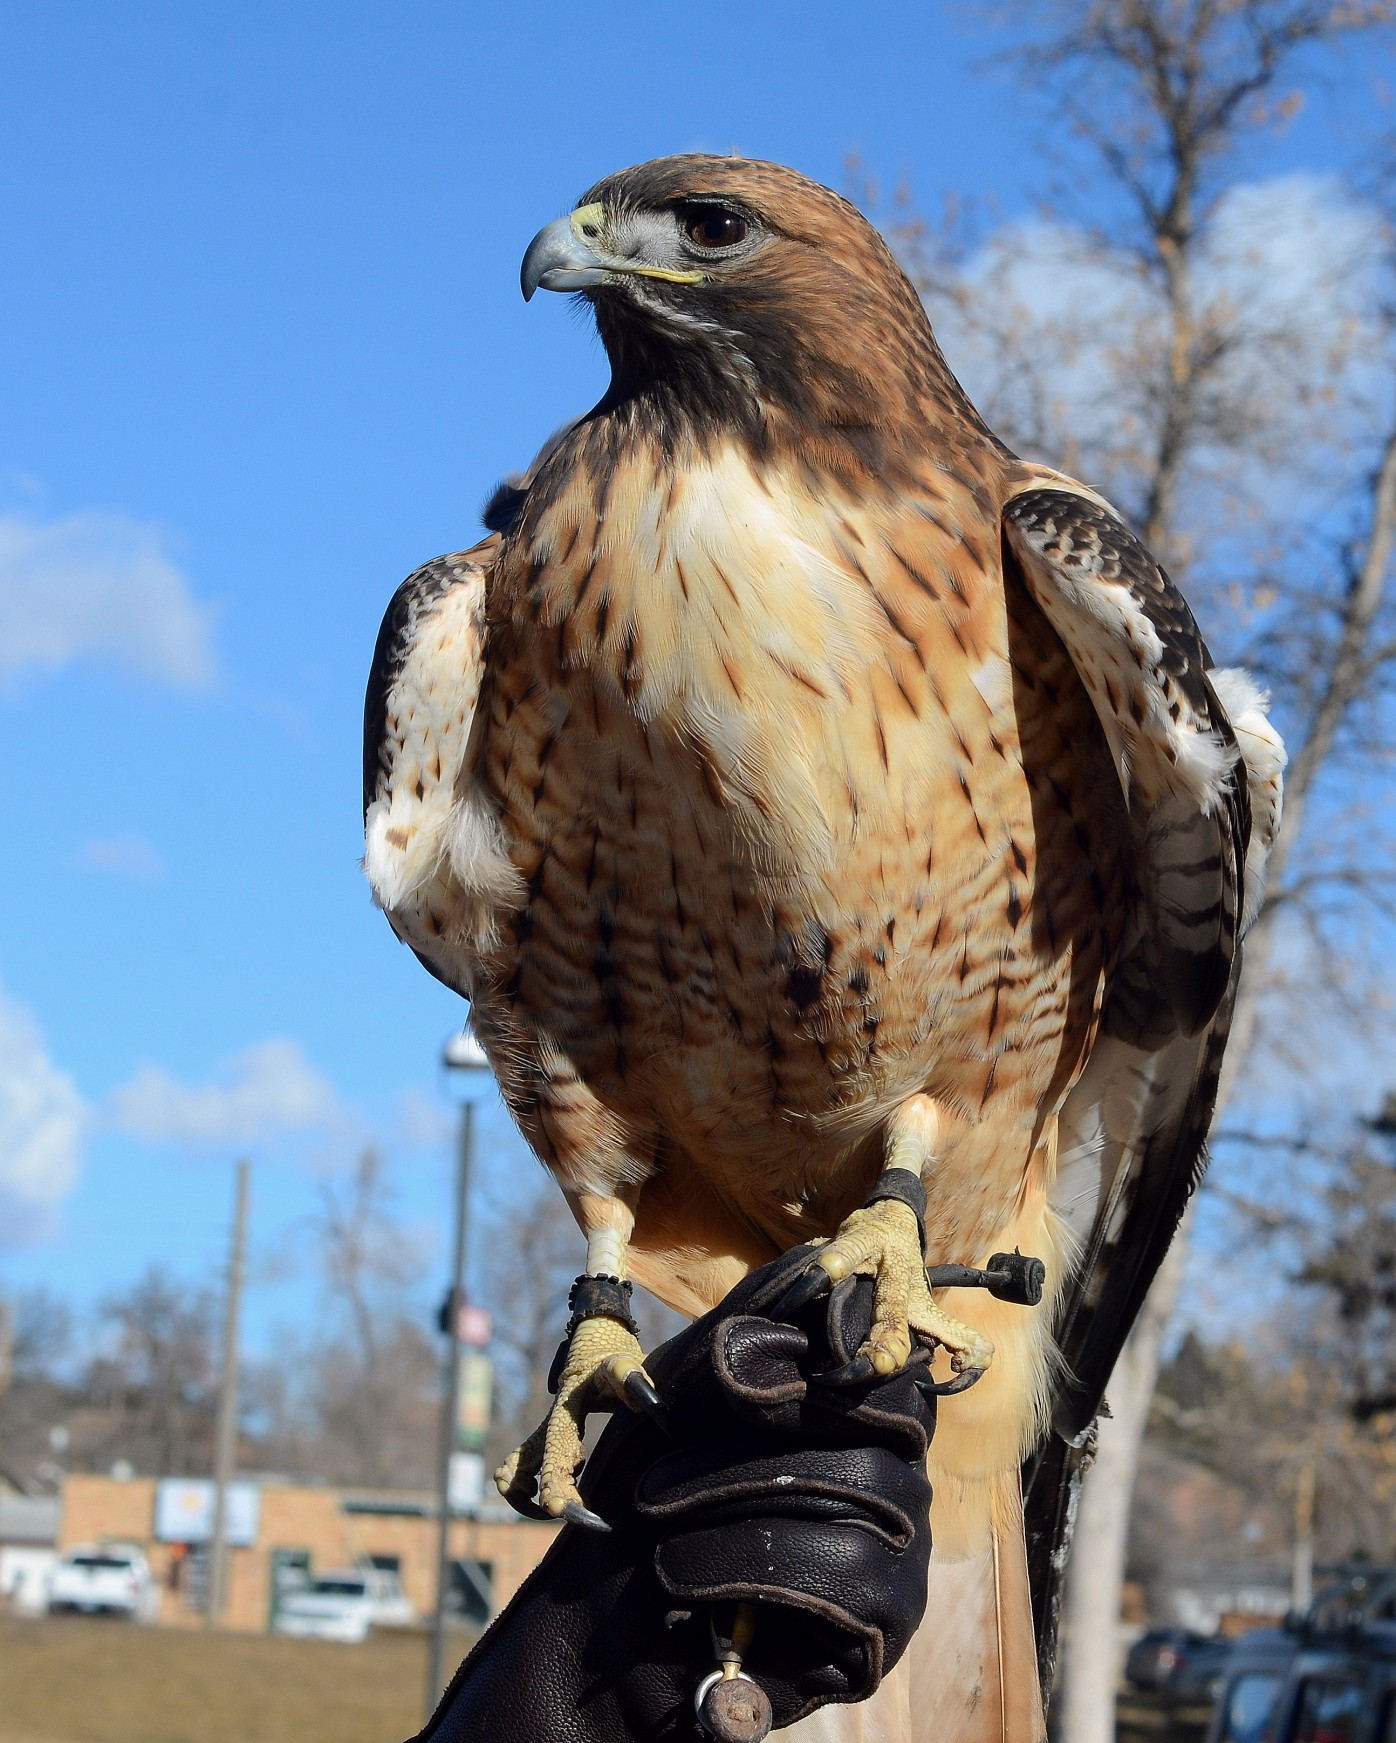 Photograph of the Red Tailed Hawk perched on bird handler's glove.